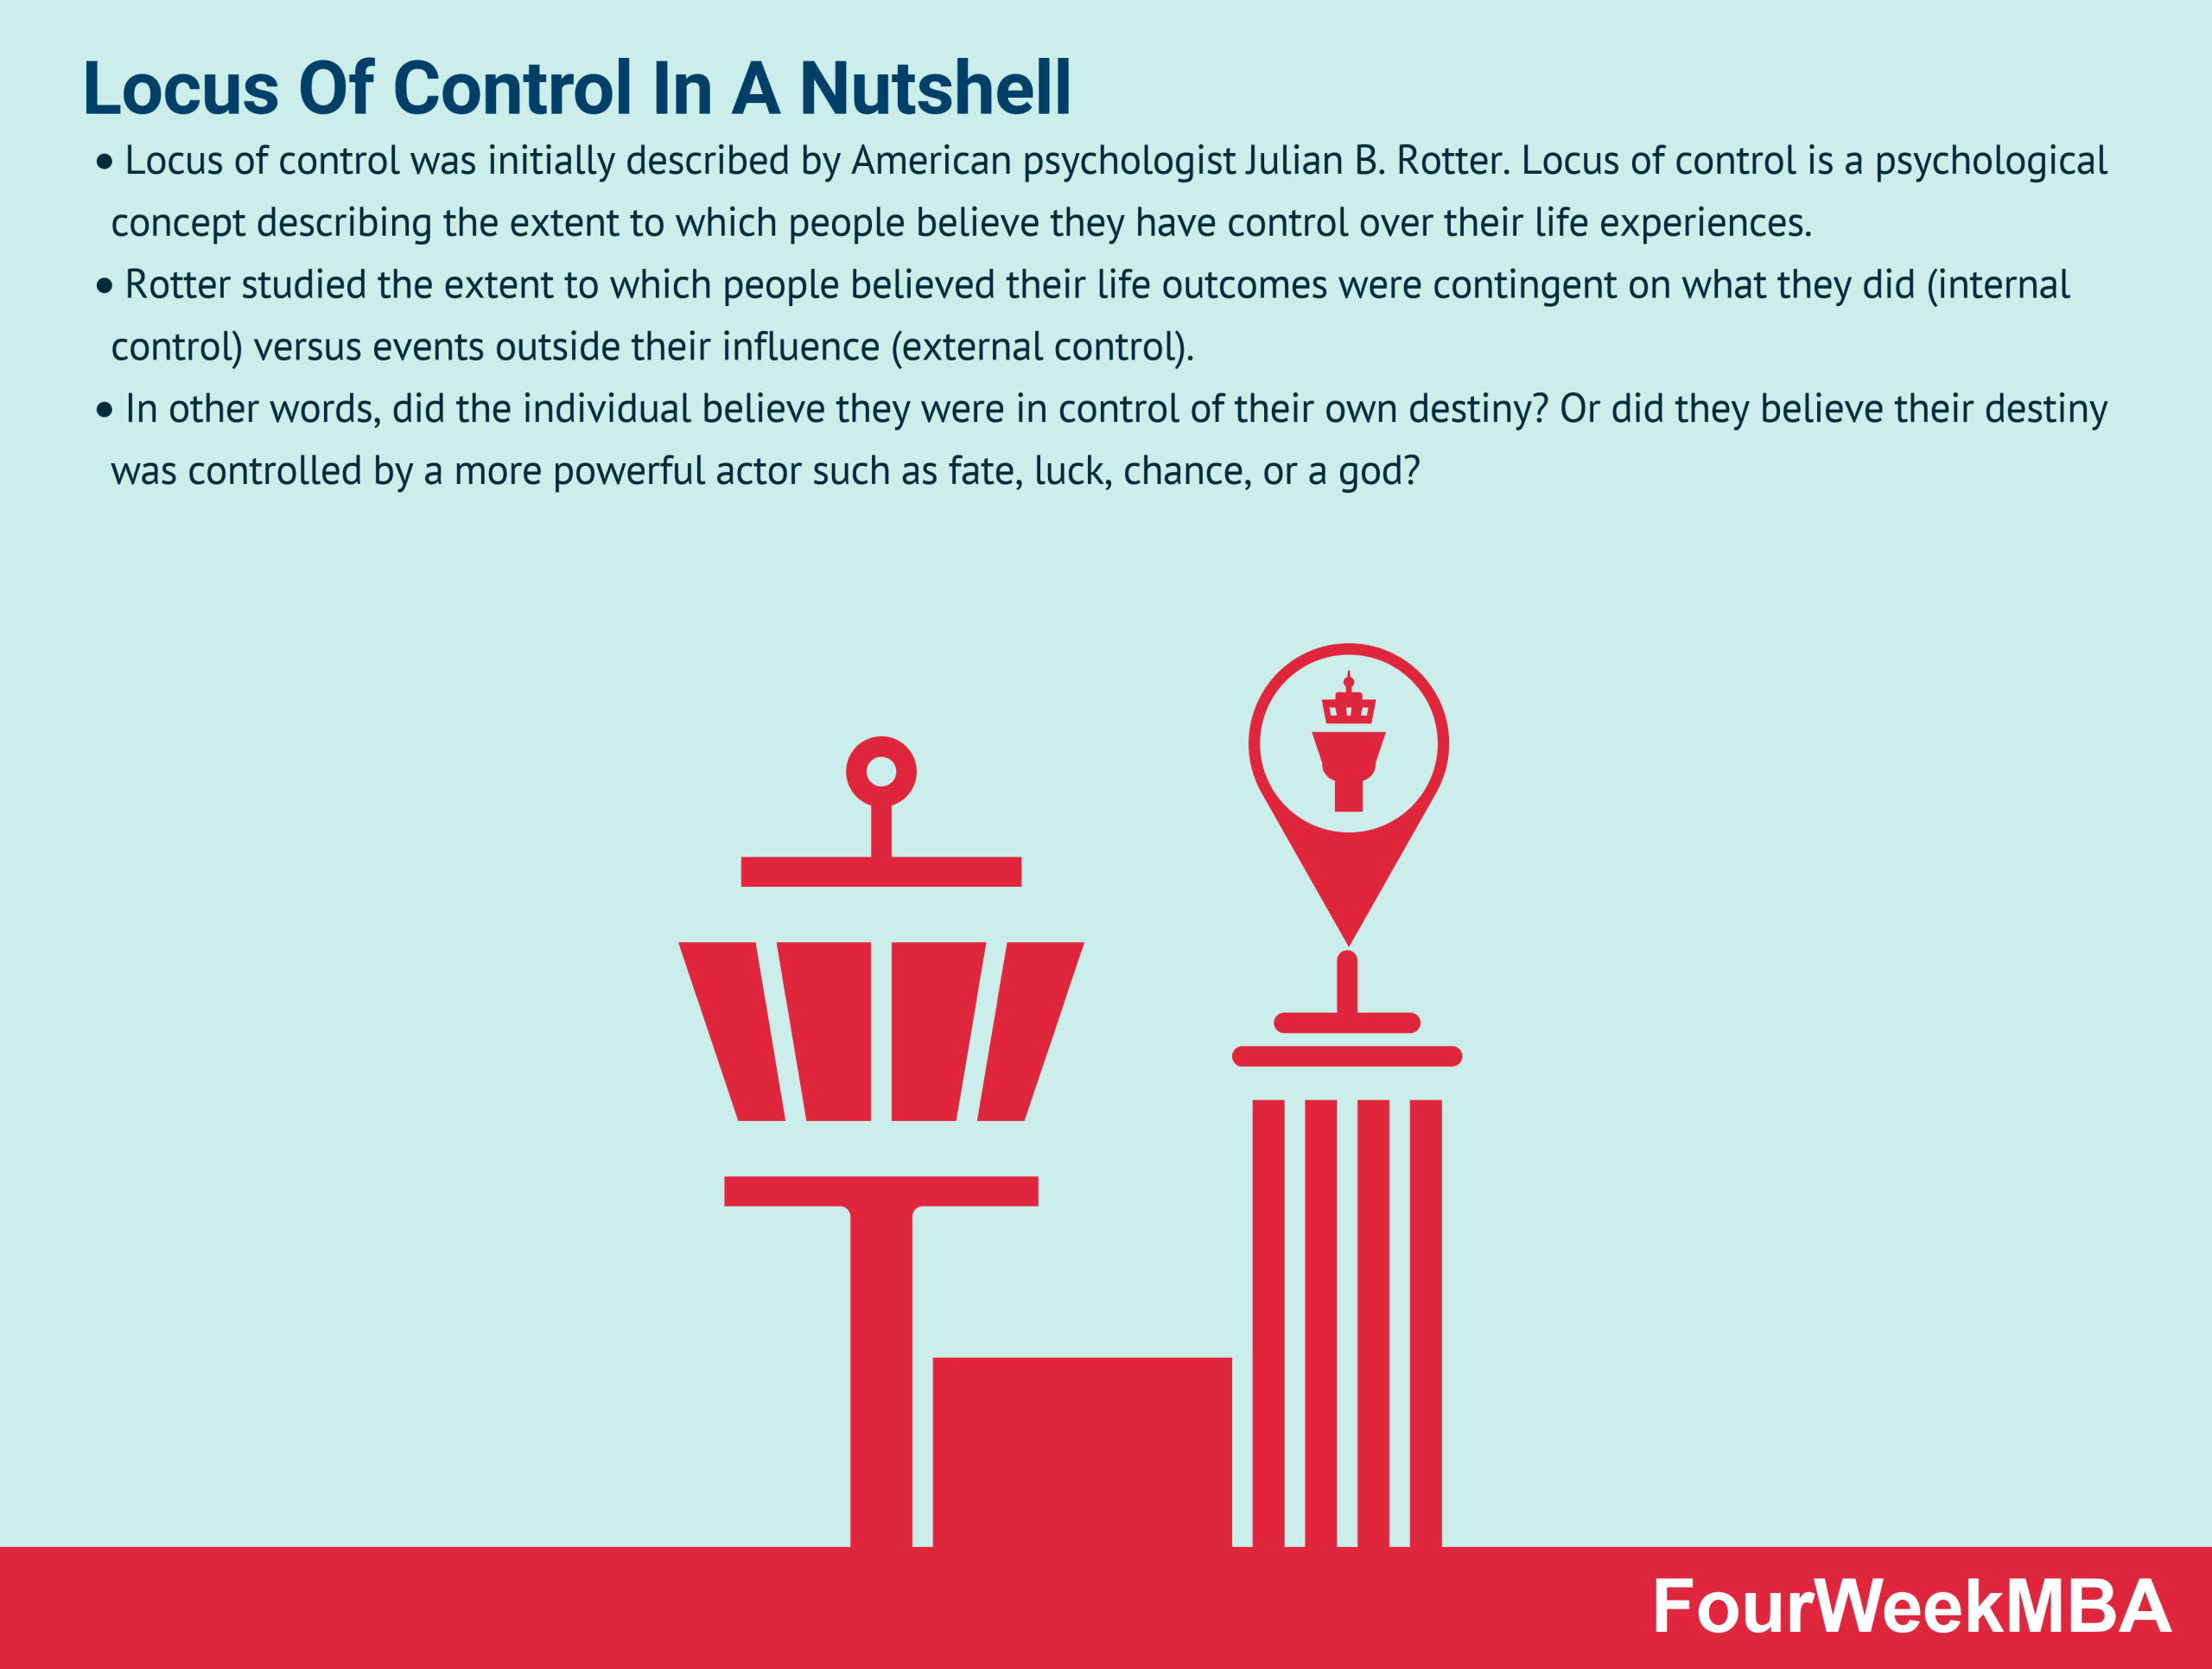 What Is Locus Of Control? Locus Of Control In A Nutshell